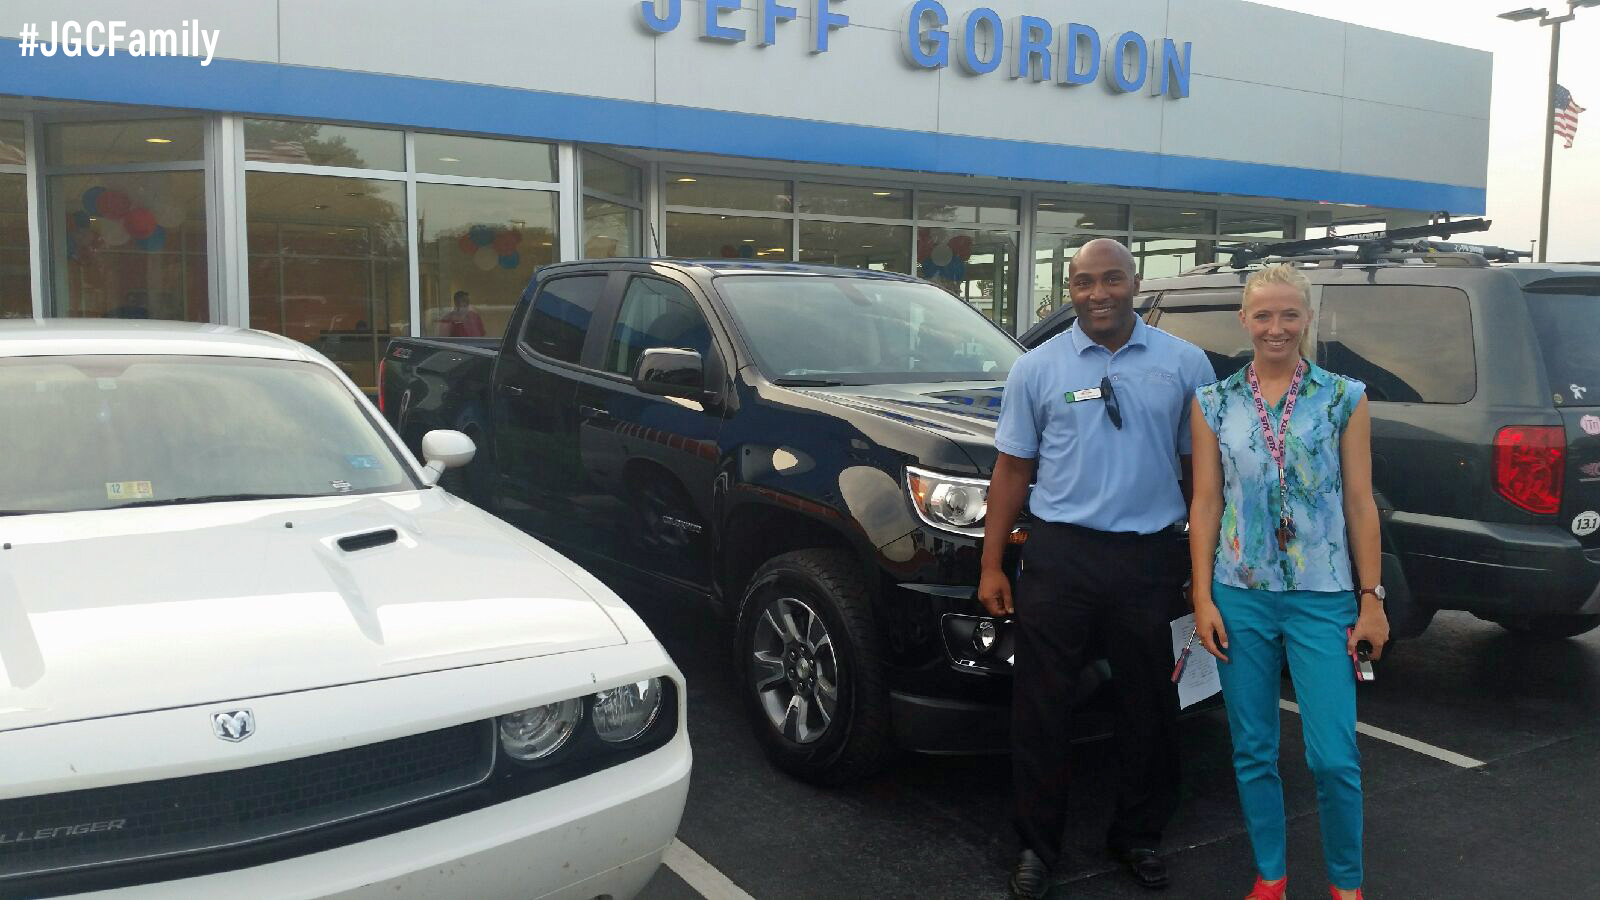 Zatha S New 2015 Chevrolet Colorado Jgcfamily Jeff Gordon Chevrolet Blog